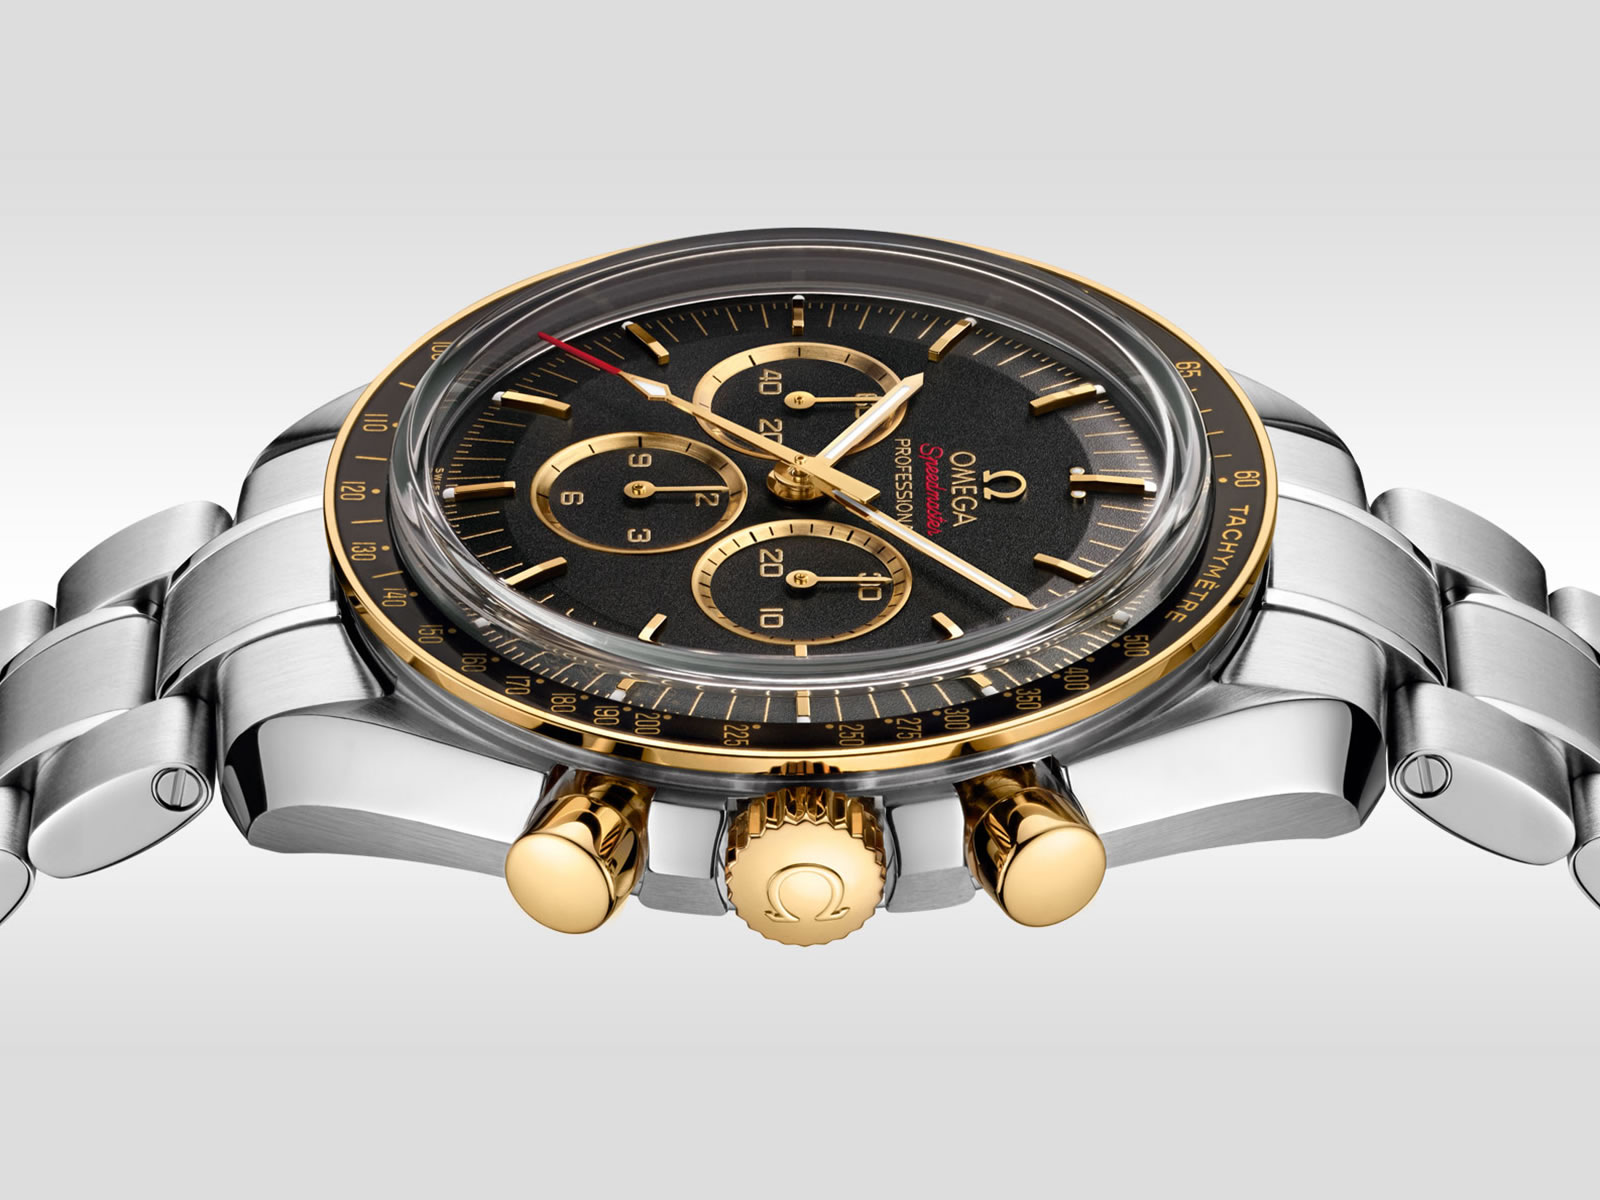 522-20-42-30-01-001-omega-olympic-games-2020-speedmaster-3-.jpg